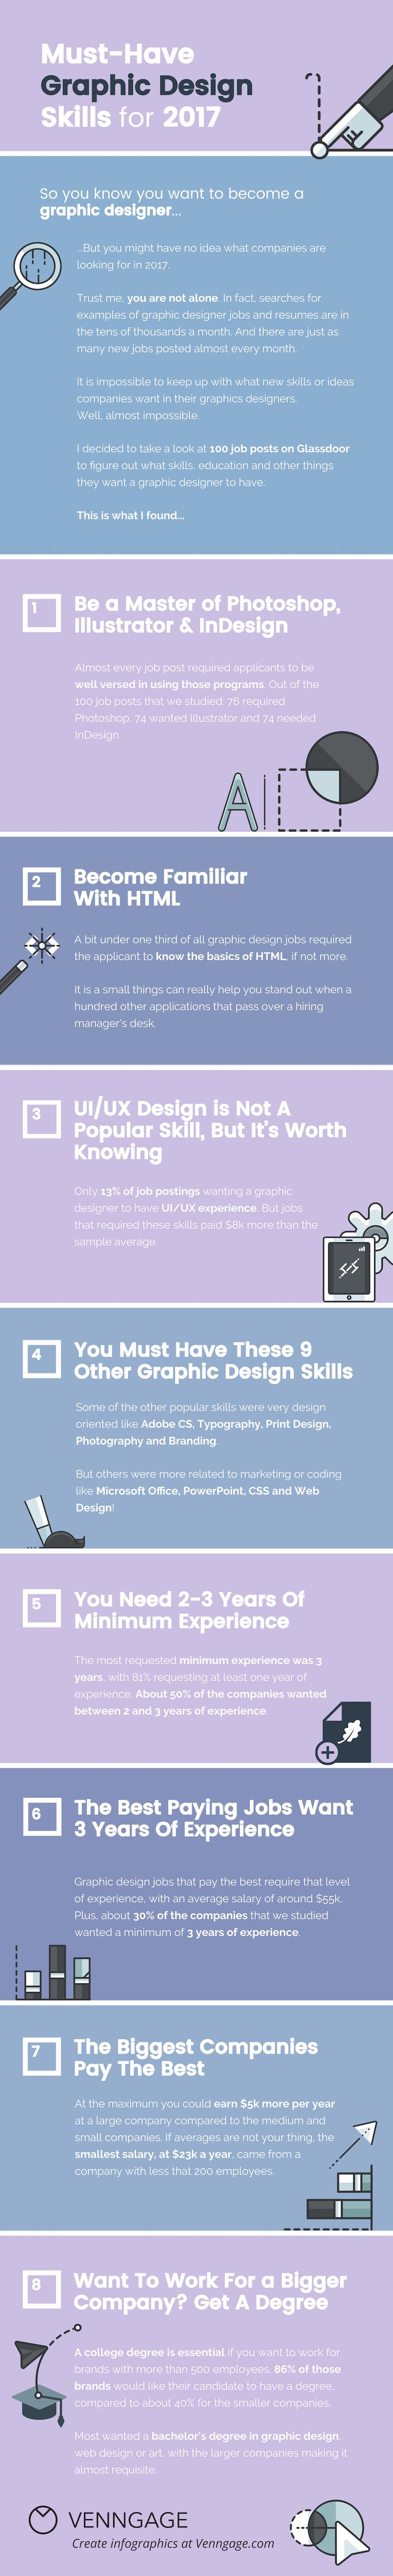 best images about employment skills 12 graphic design skills you need to be hired